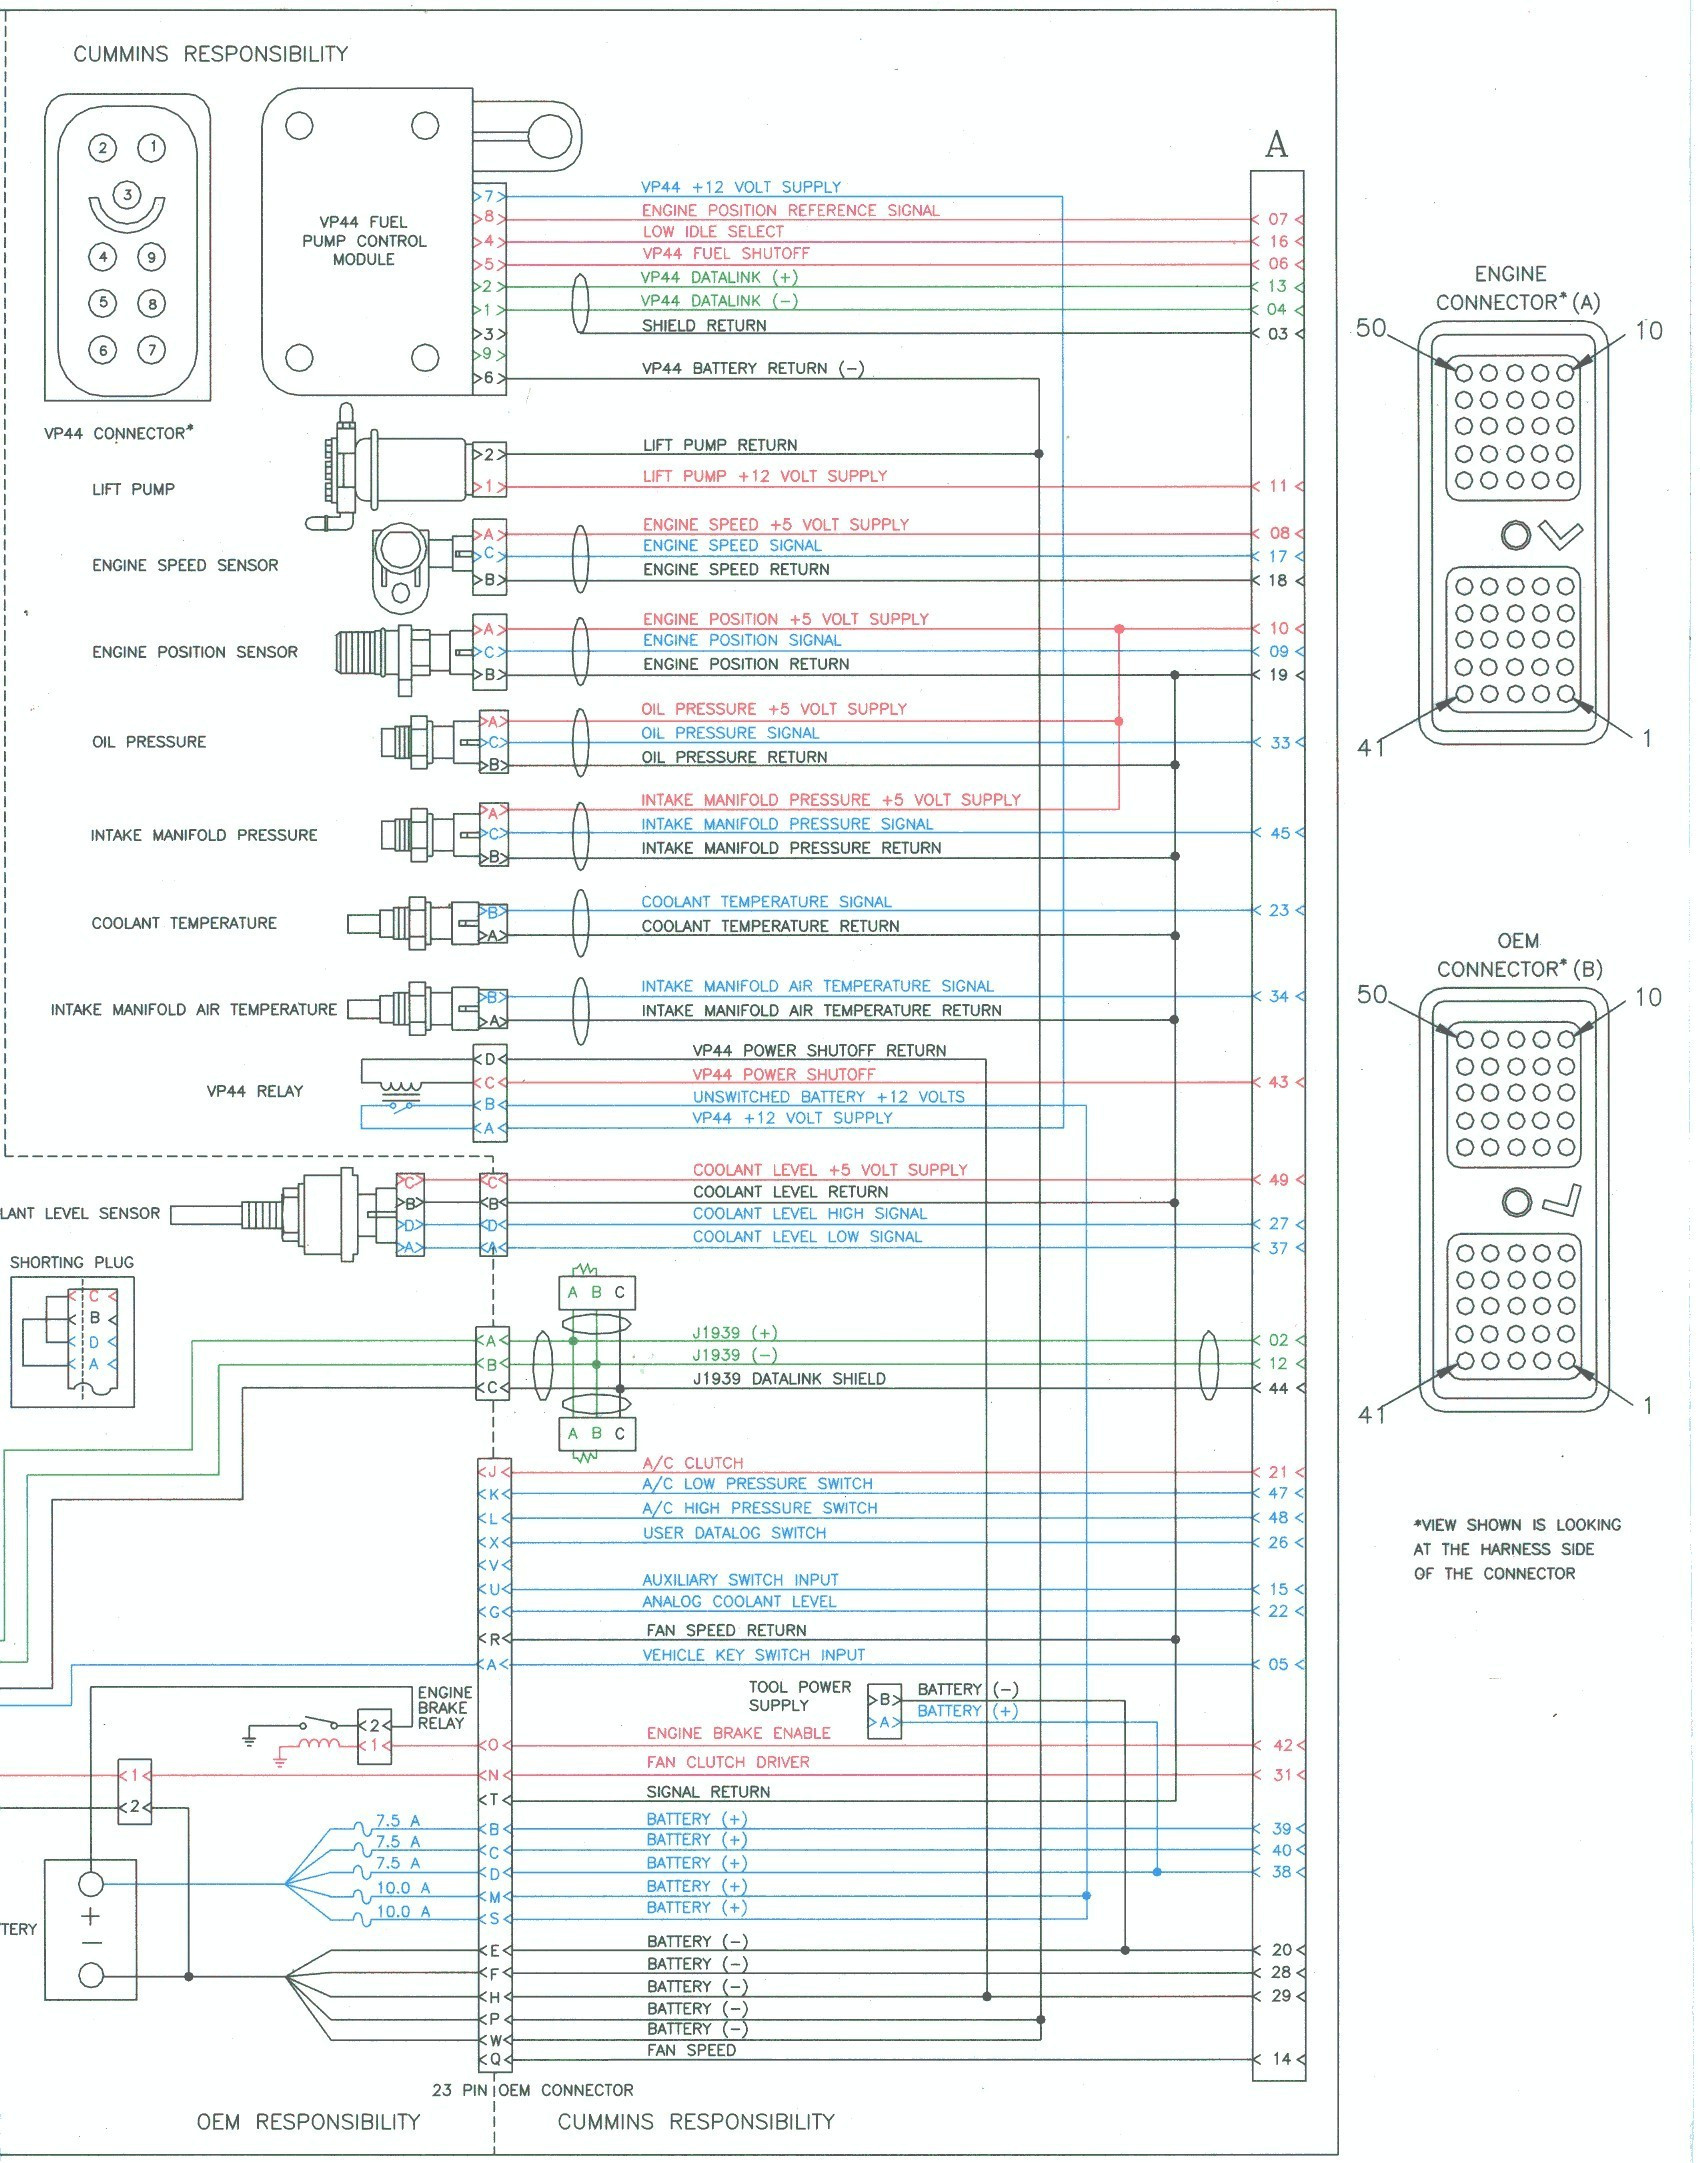 2001 Dodge Stratus Wiring Diagram Simplified Shapes Wiring Diagram - 1999 Dodge Ram 1500 Radio Wiring Diagram